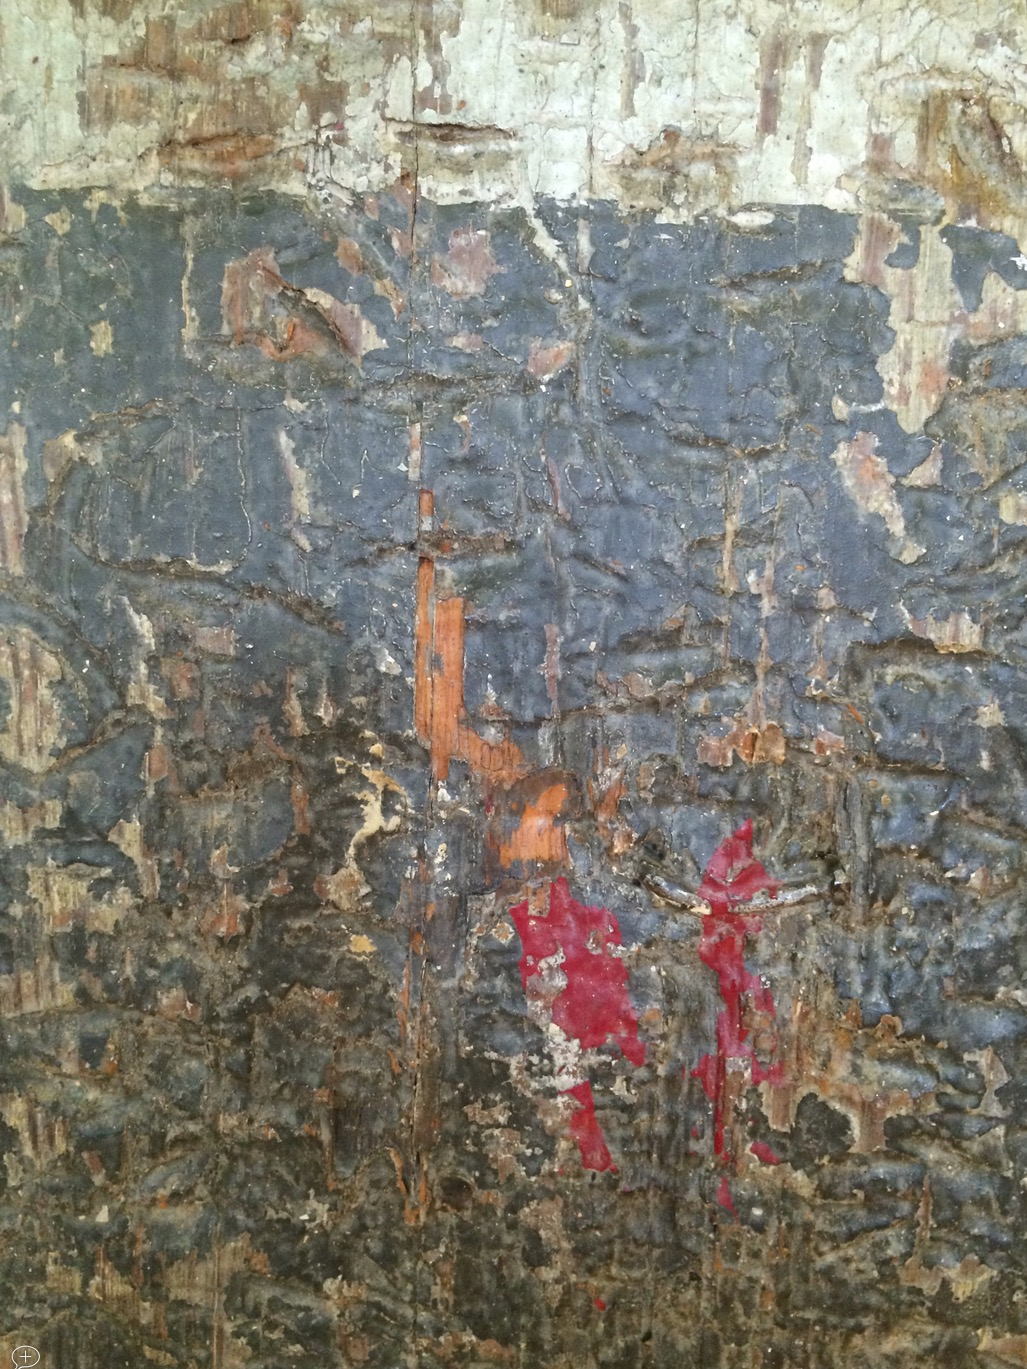 Detail of one of the support column photos showing the encrusted paint. [Not shown this size at SH&W]